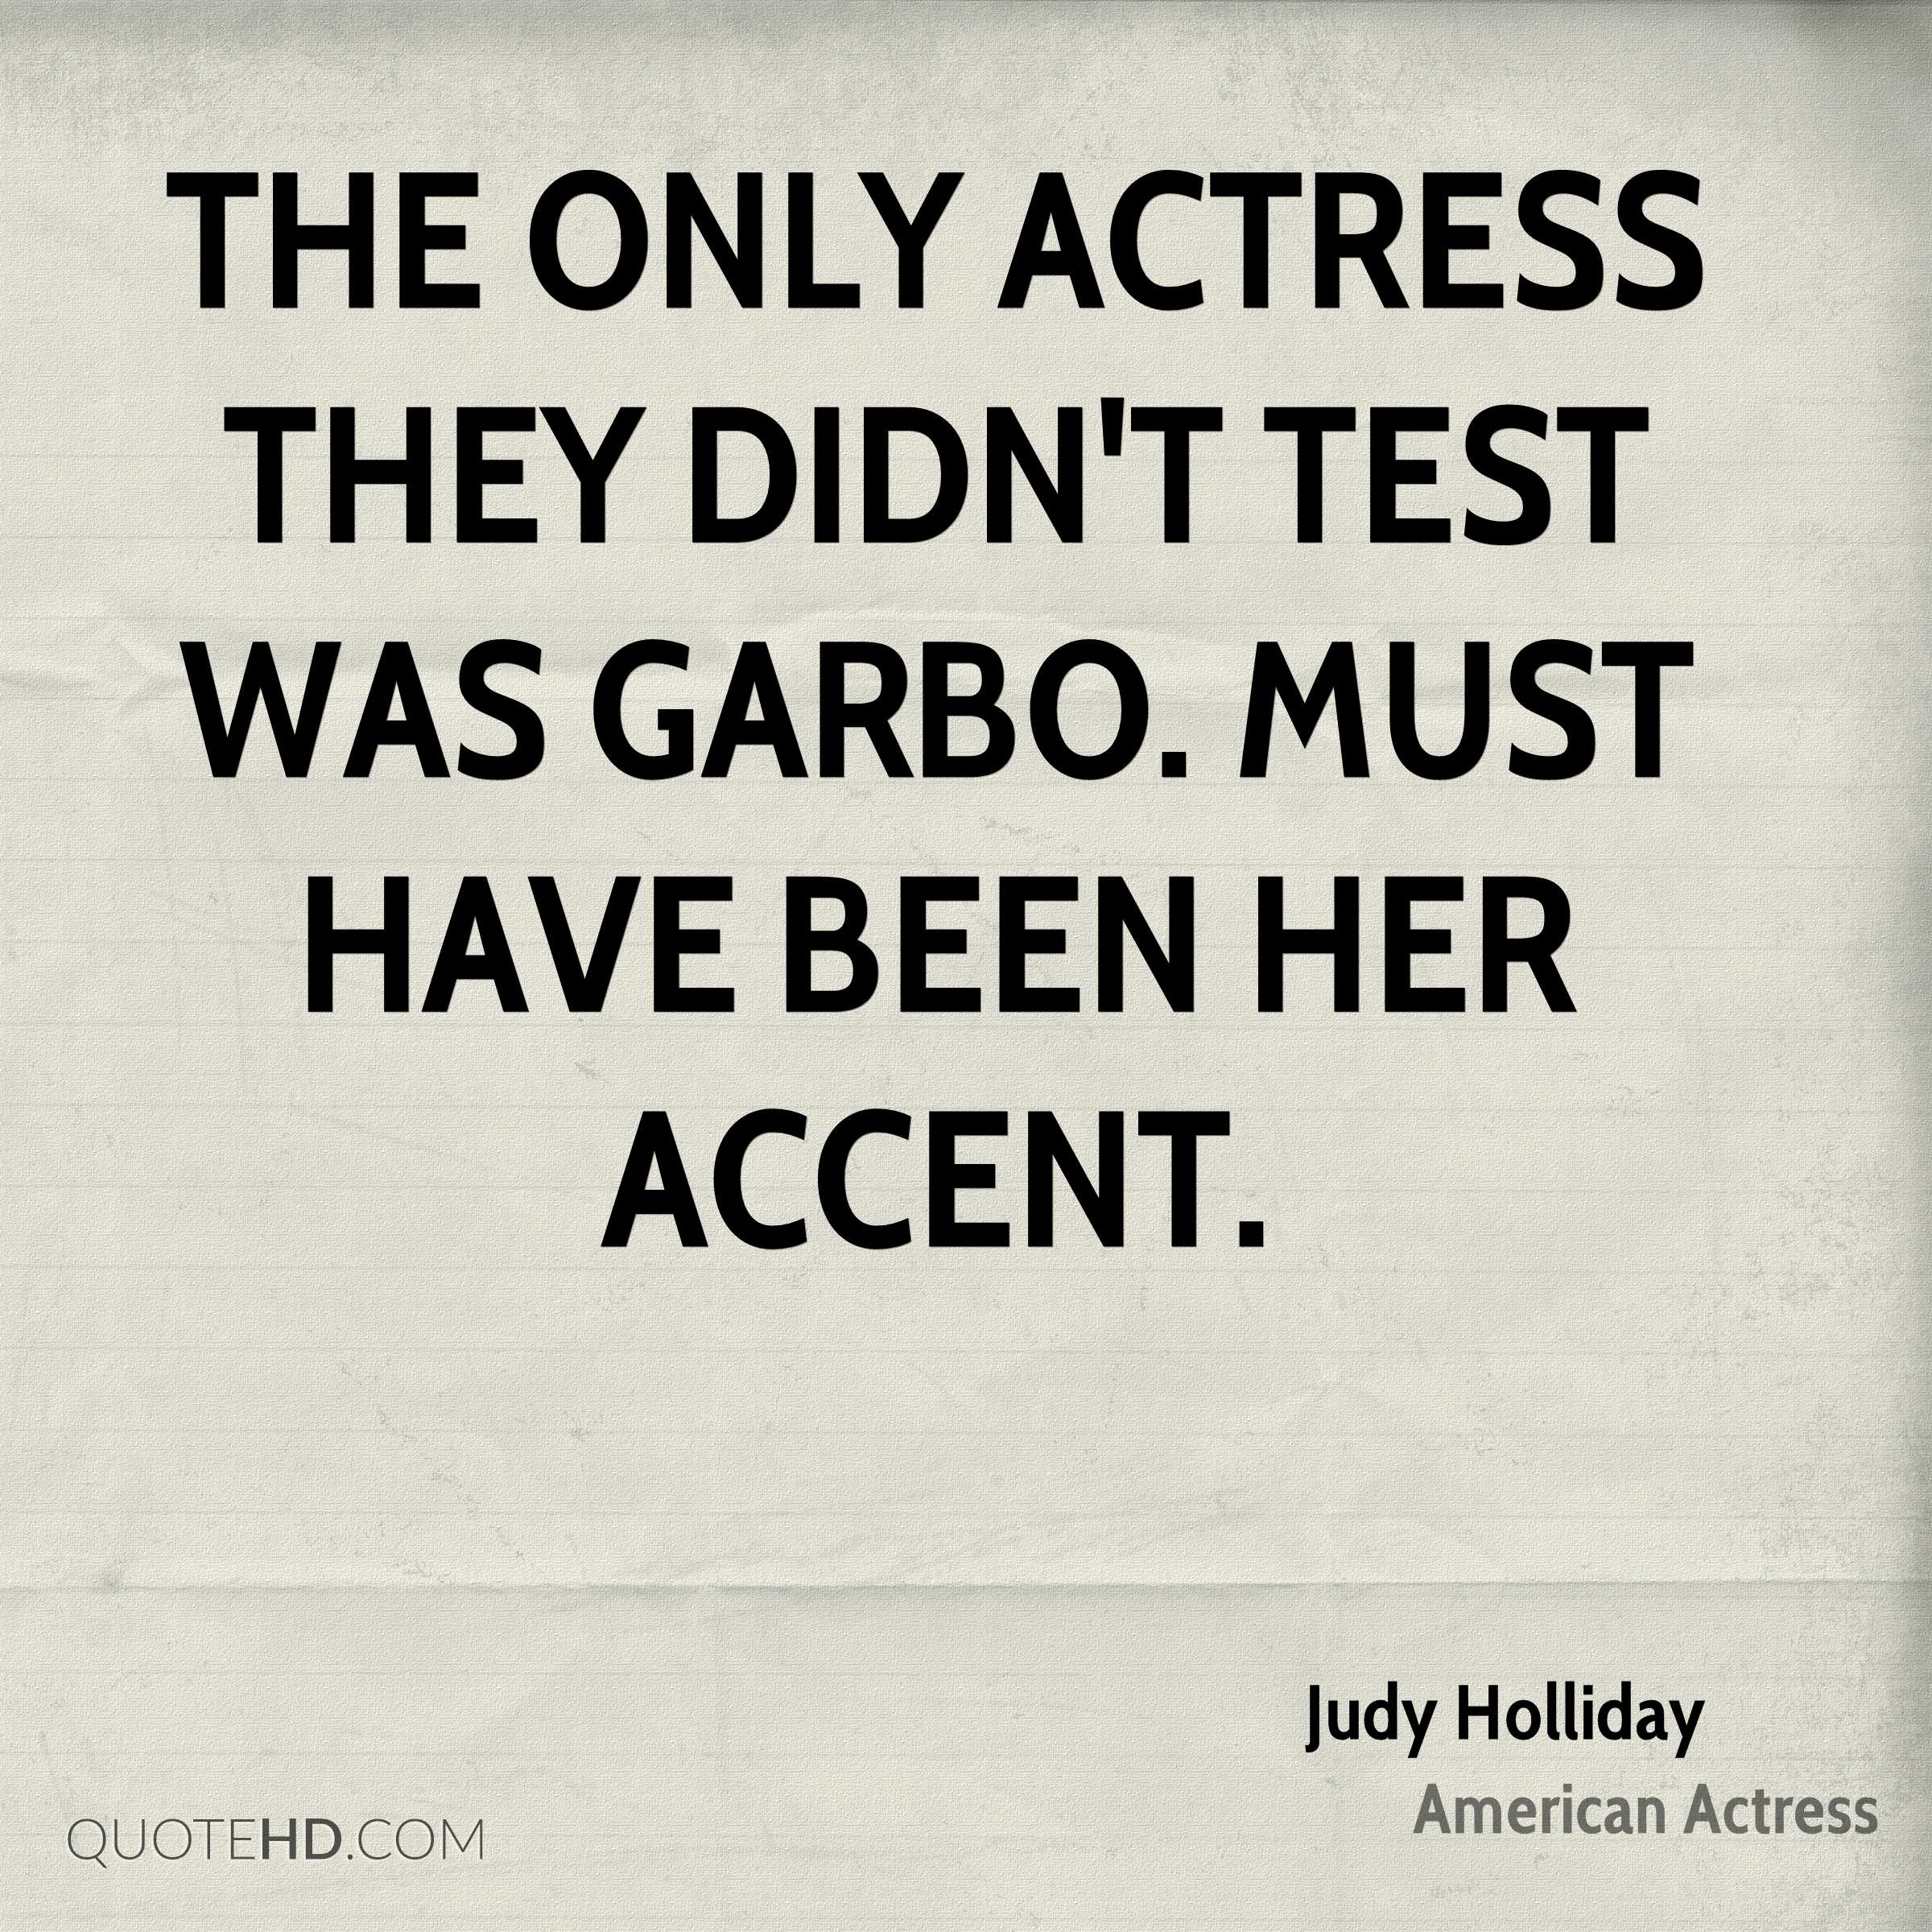 The only actress they didn't test was Garbo. Must have been her accent.